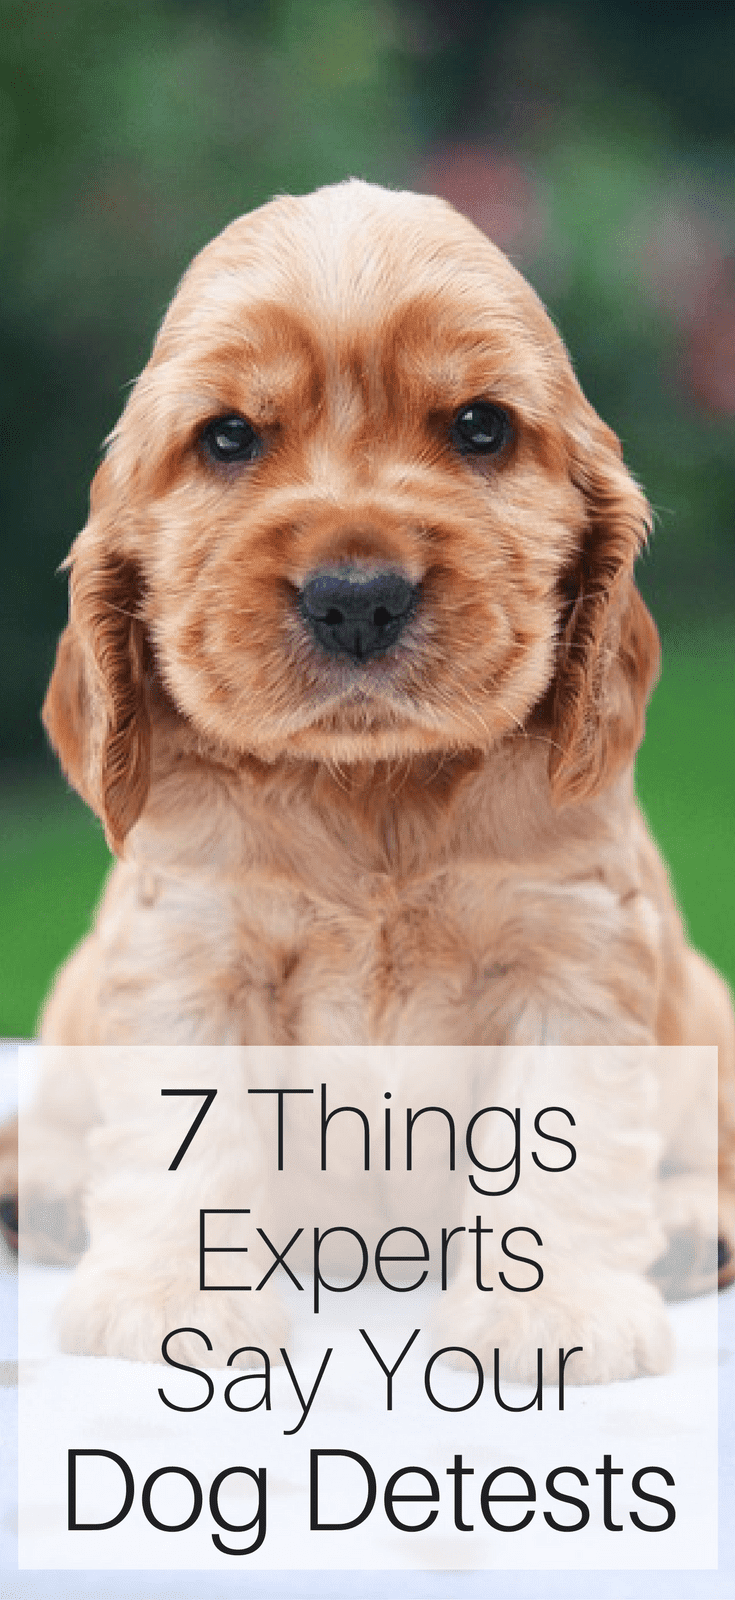 7 Things Experts Says Your Dog Detests